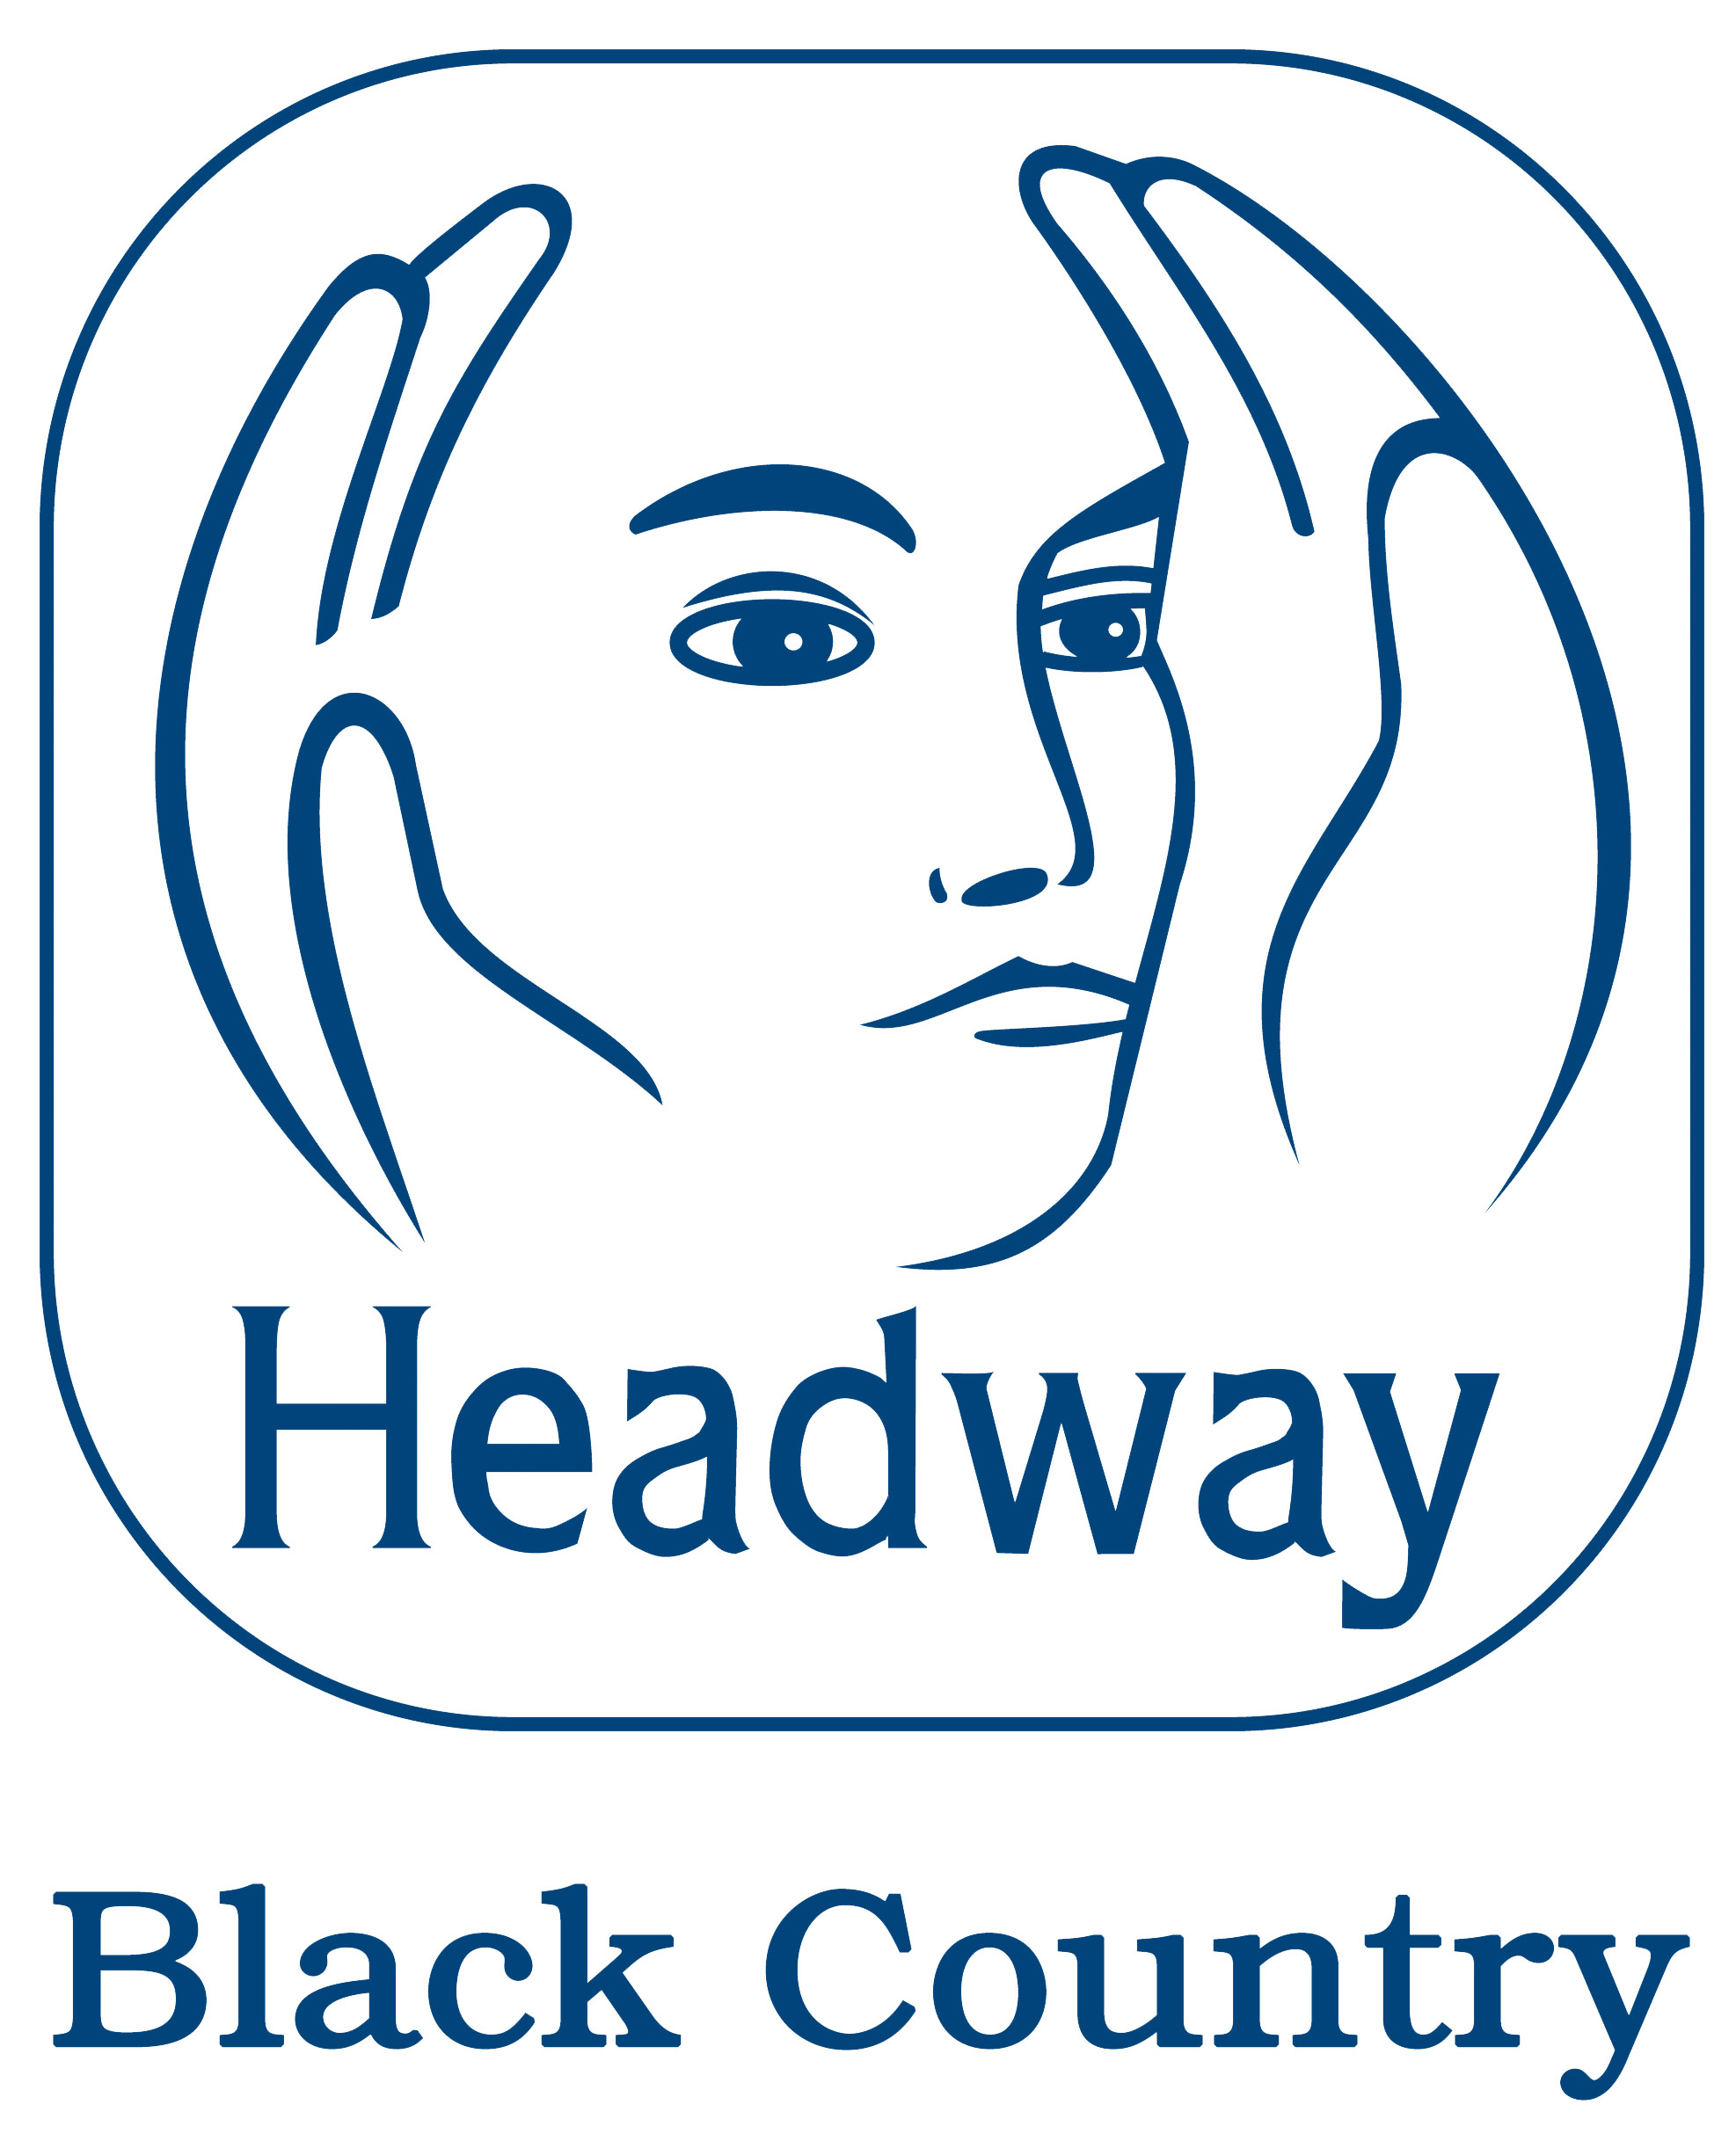 Headway Black Country